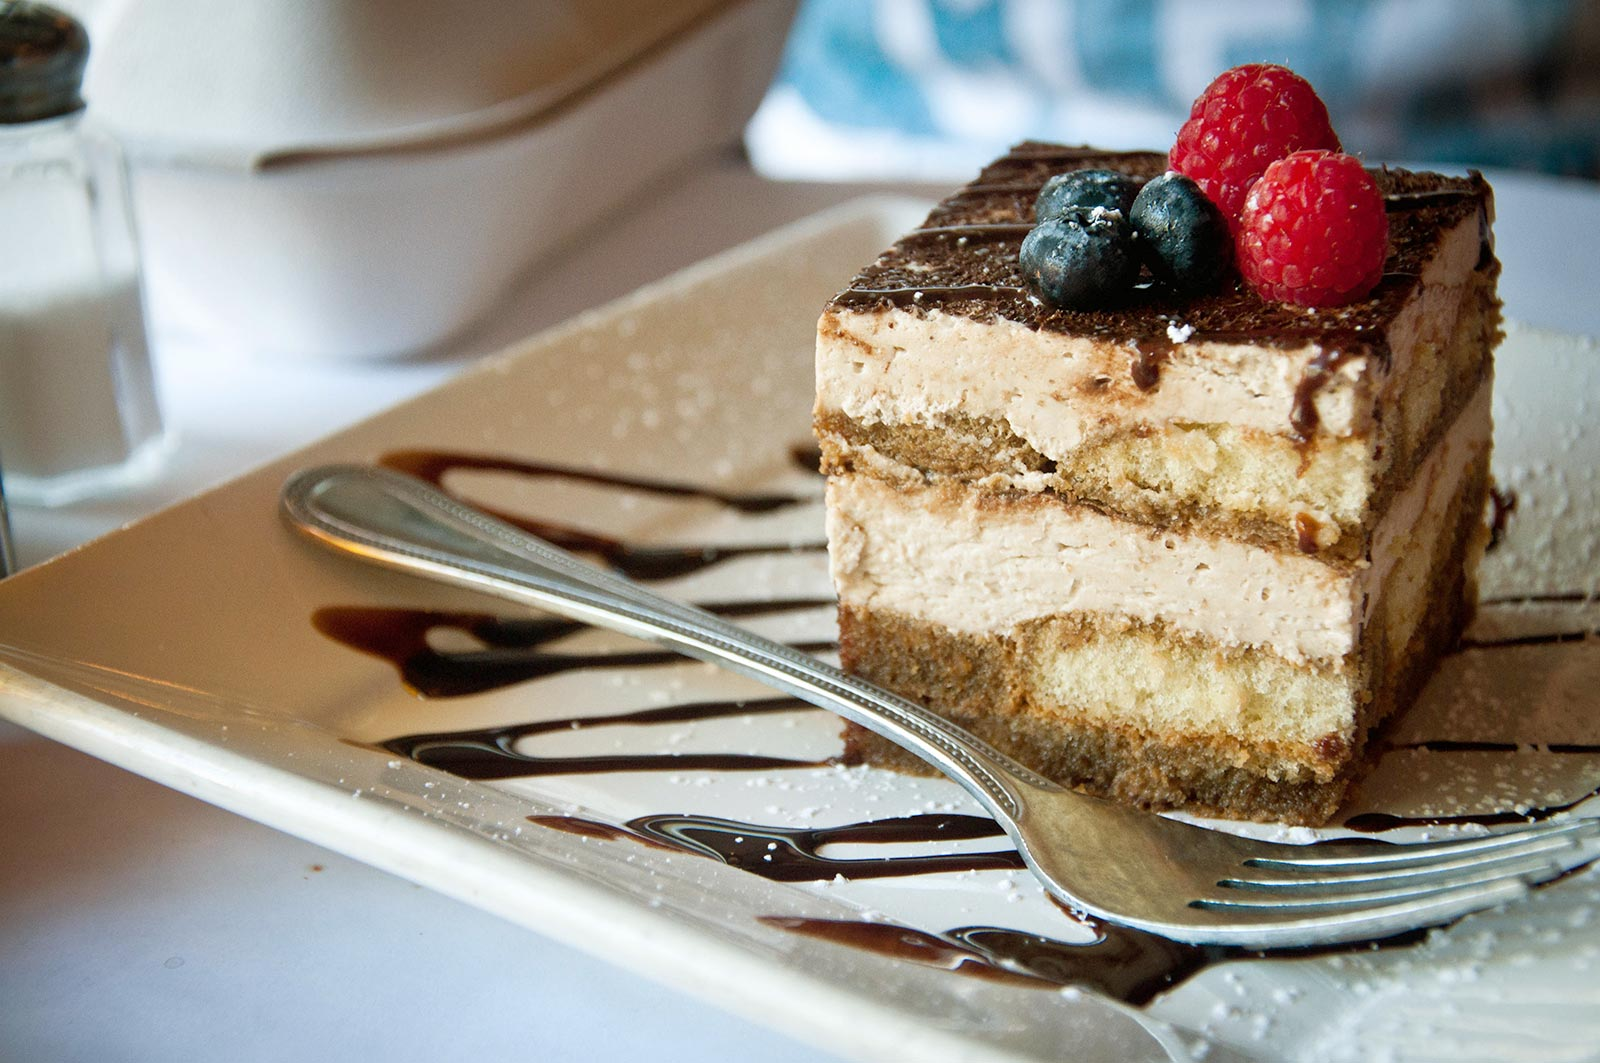 Image for Have you tried the coffee-flavored Italian dessert, tiramisu, before?